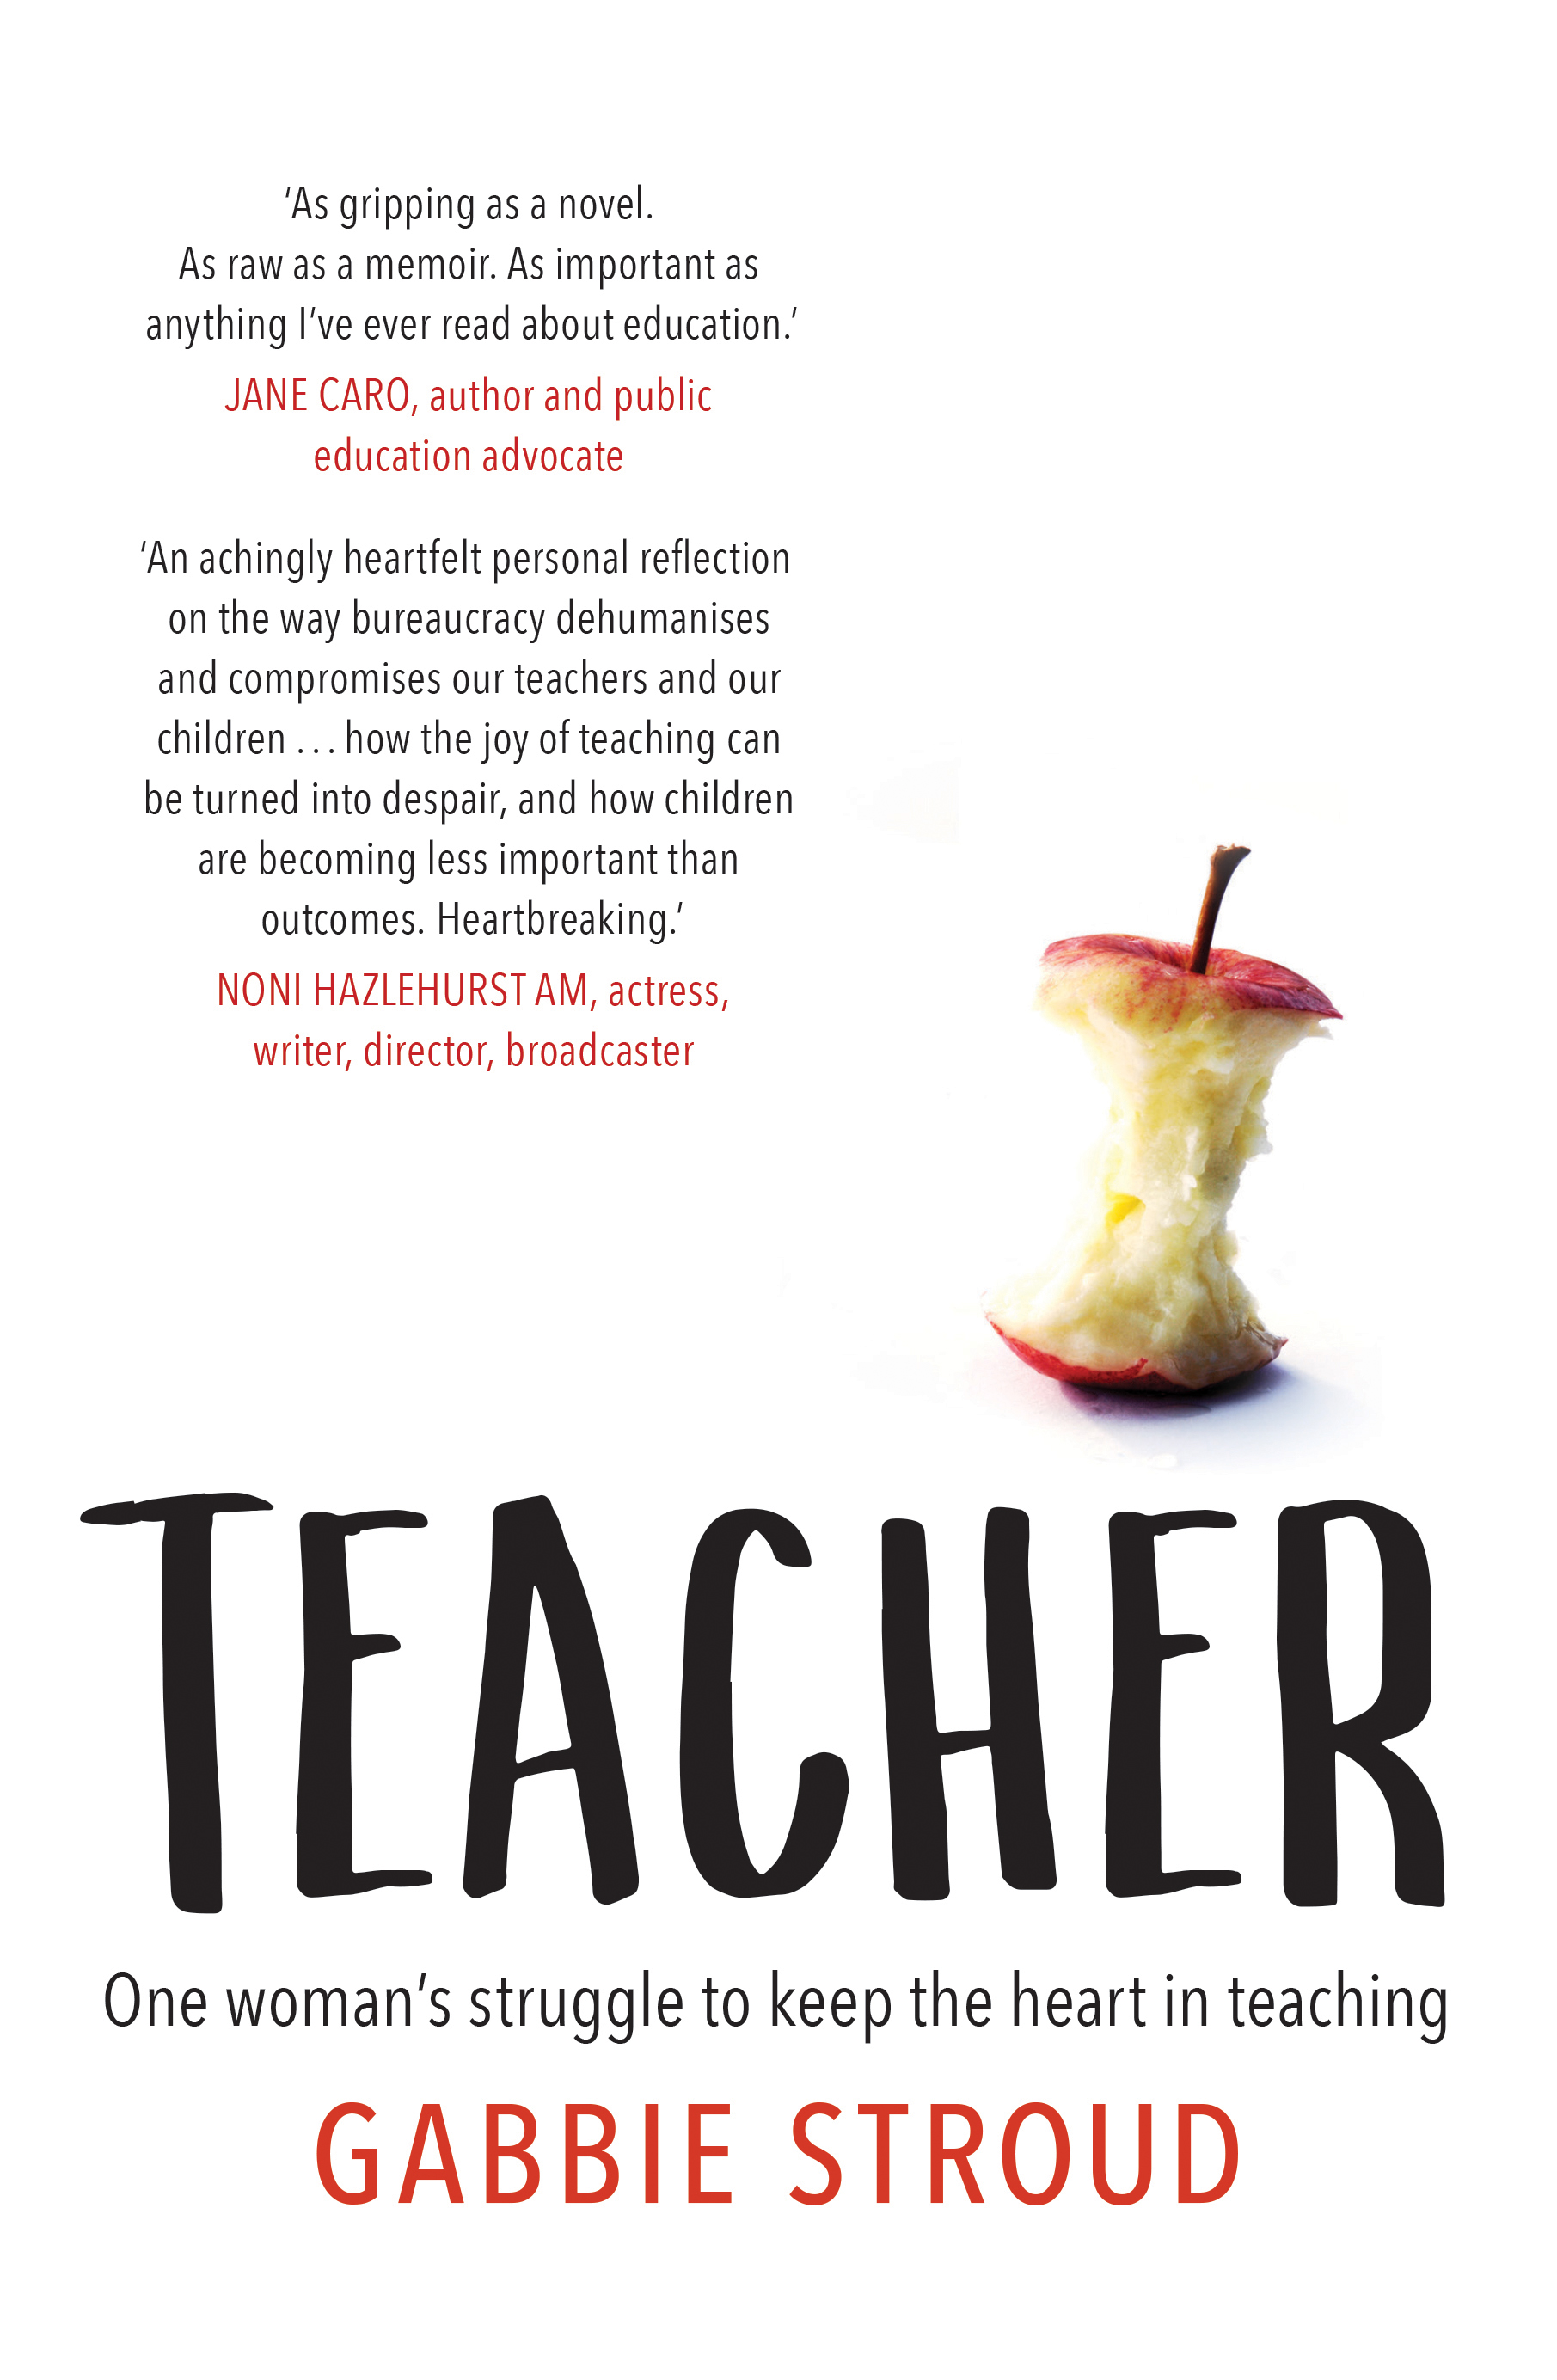 Teacher by Gabbie Stroud, ISBN: 9781760295905